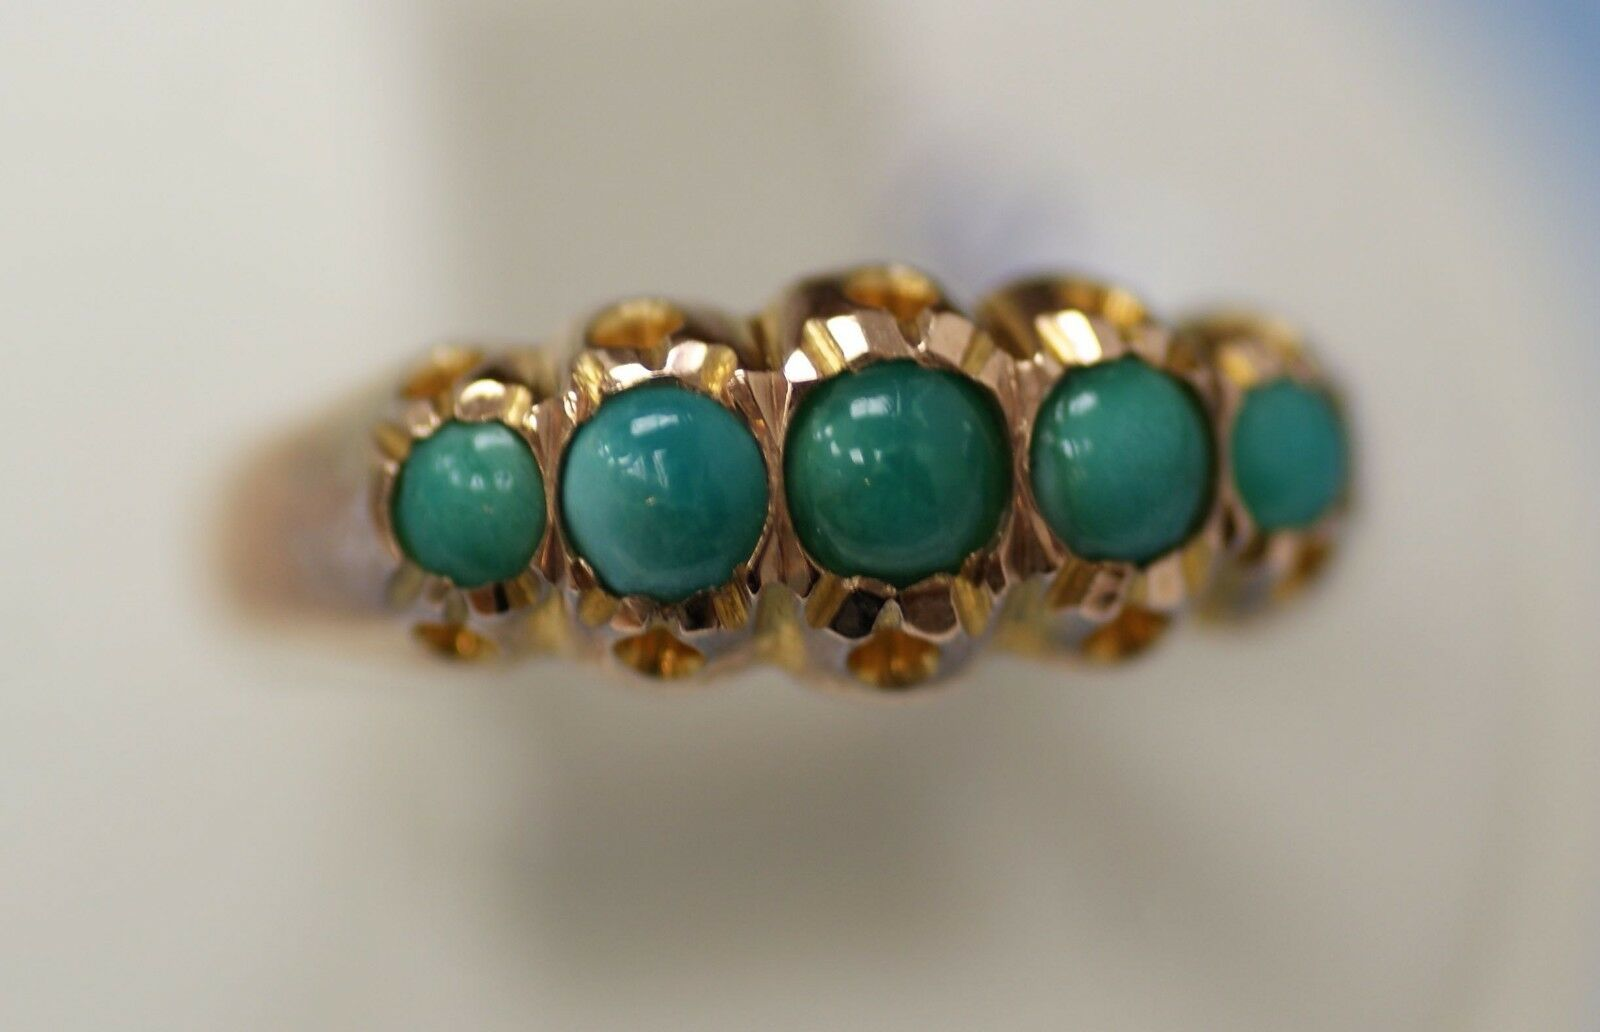 Victorian gold ring 9K with turquoise. Size - 8.5. Signed.